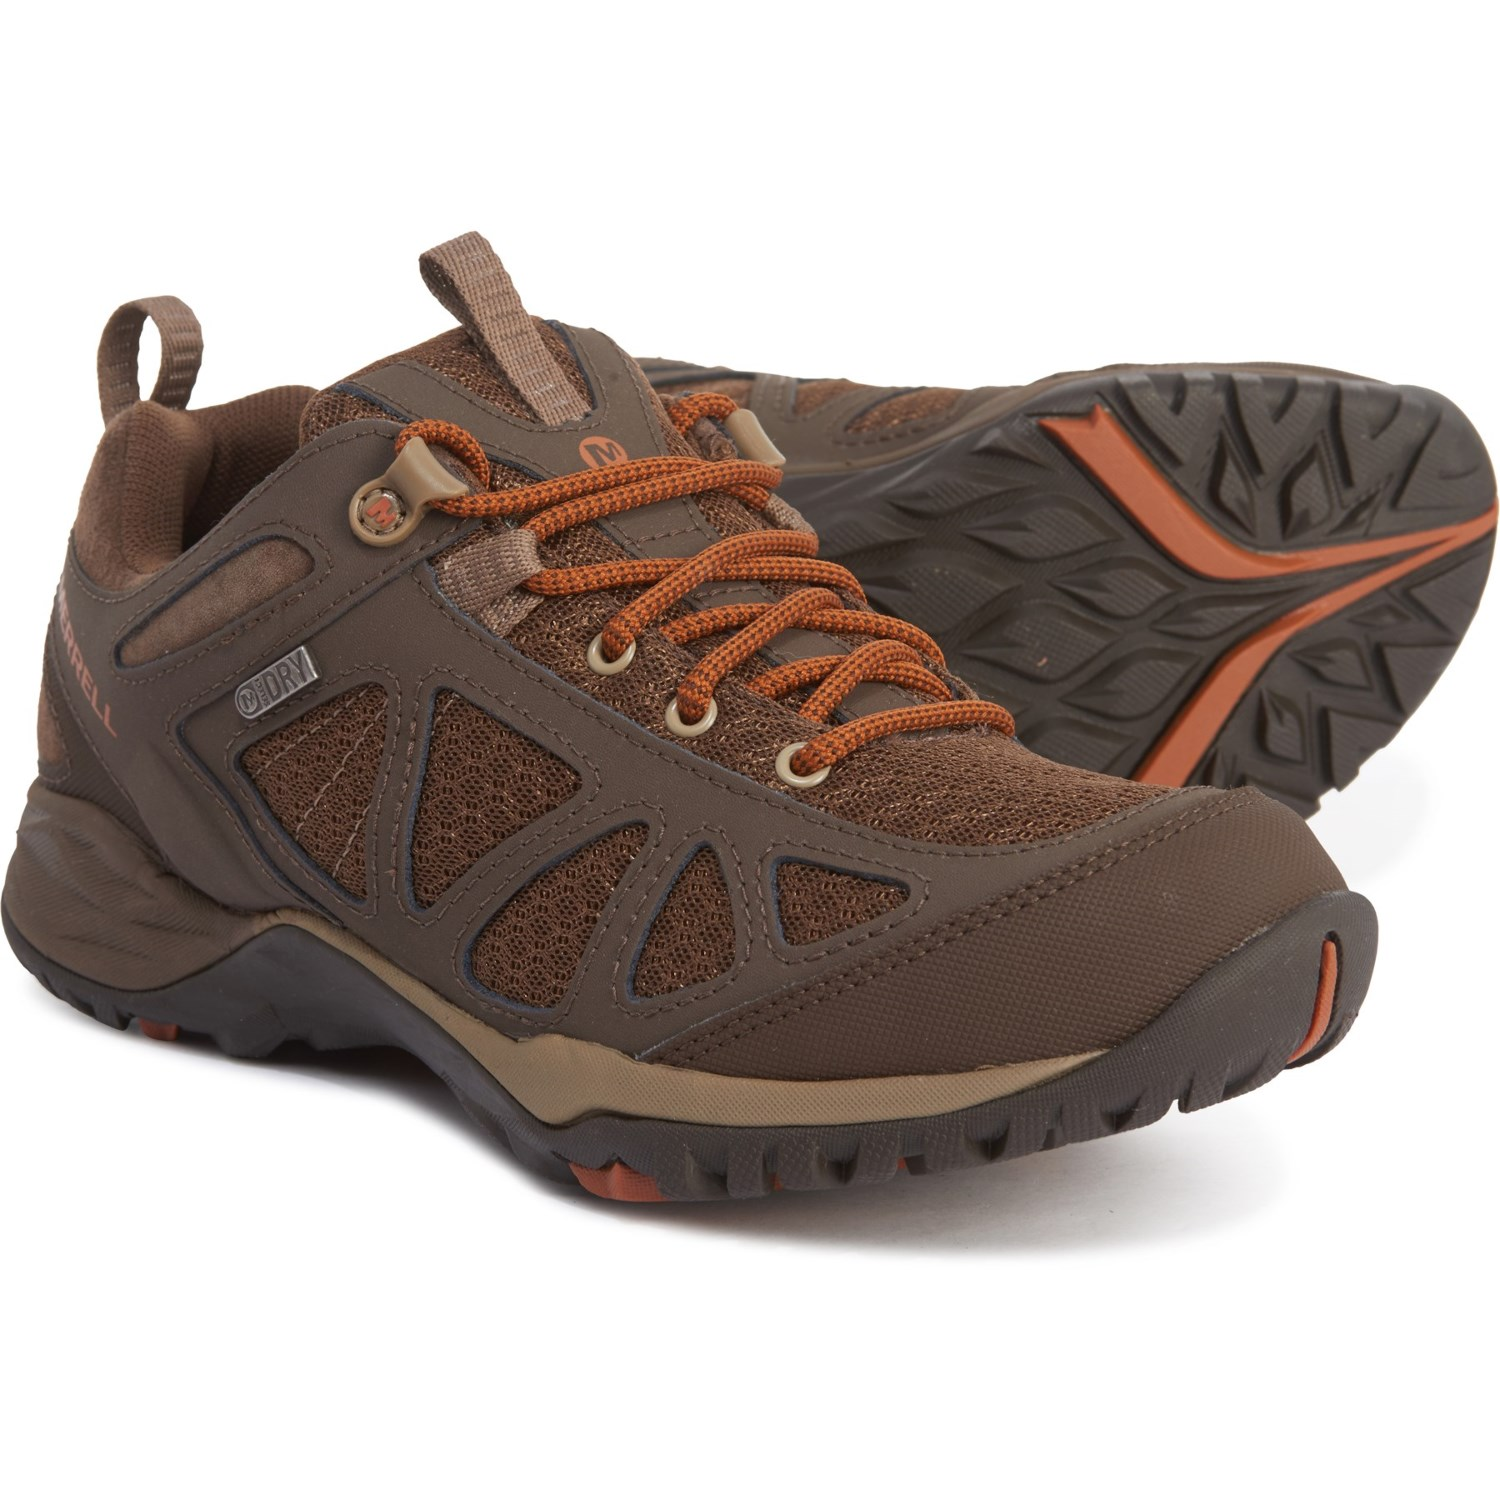 7b299cfc66d Merrell Siren Sport Q2 Hiking Shoes (For Women) - Save 37%